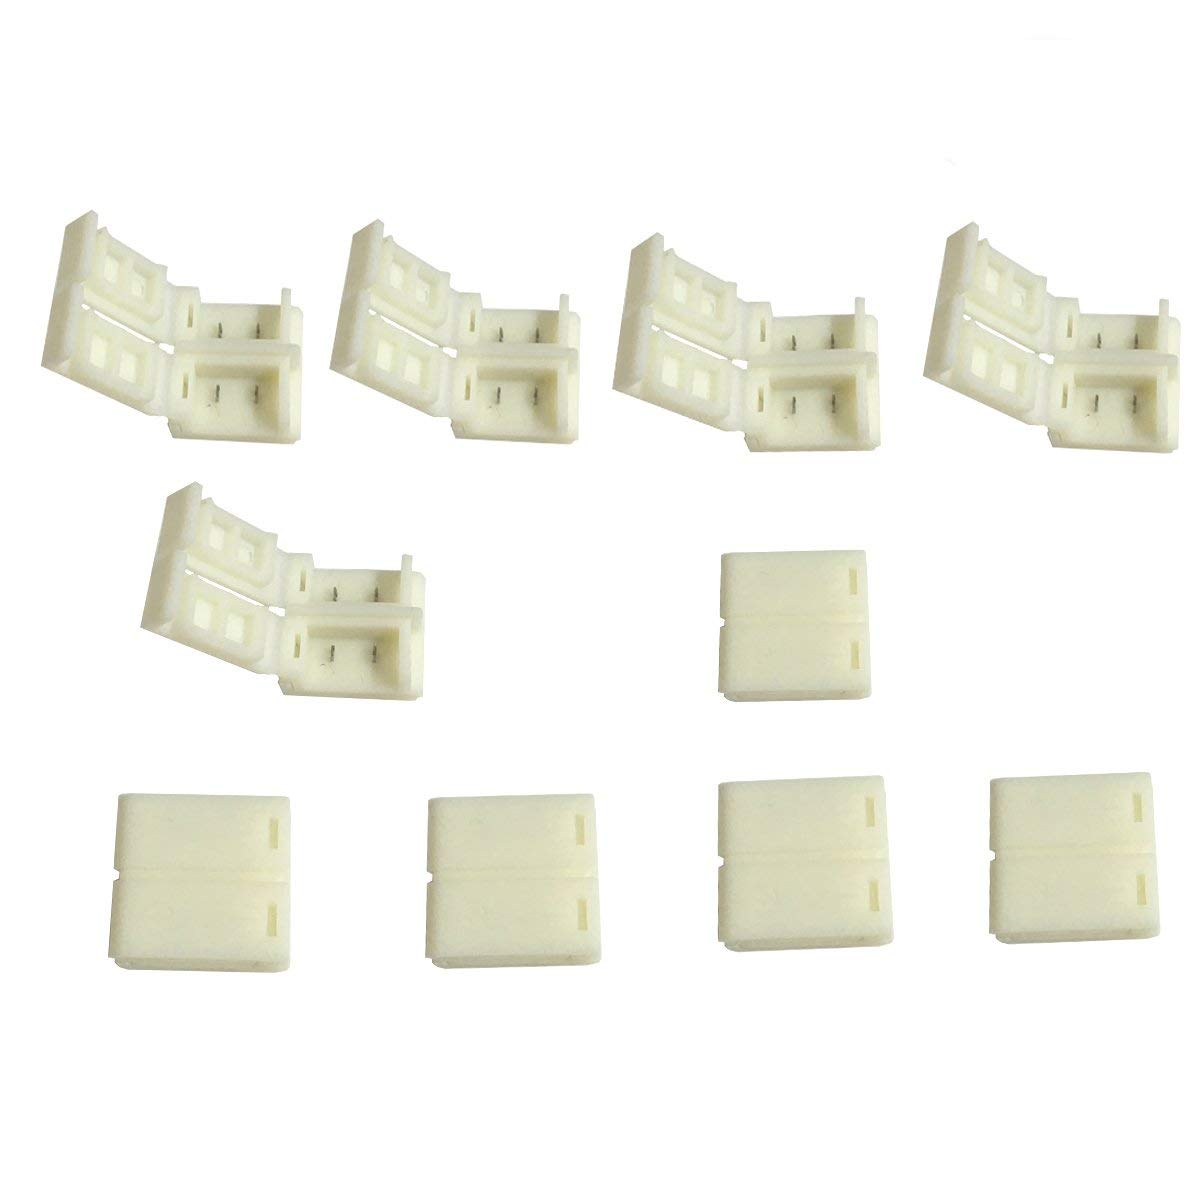 10 Pcs Connectors Applicable for 10mm Wide Waterproof LED Strip Light 5050, No Soldering LED Connector for Waterproof Gapless Strip to Strip LED rgb Waterproof Clasp LED Light Strip Gapless Connector